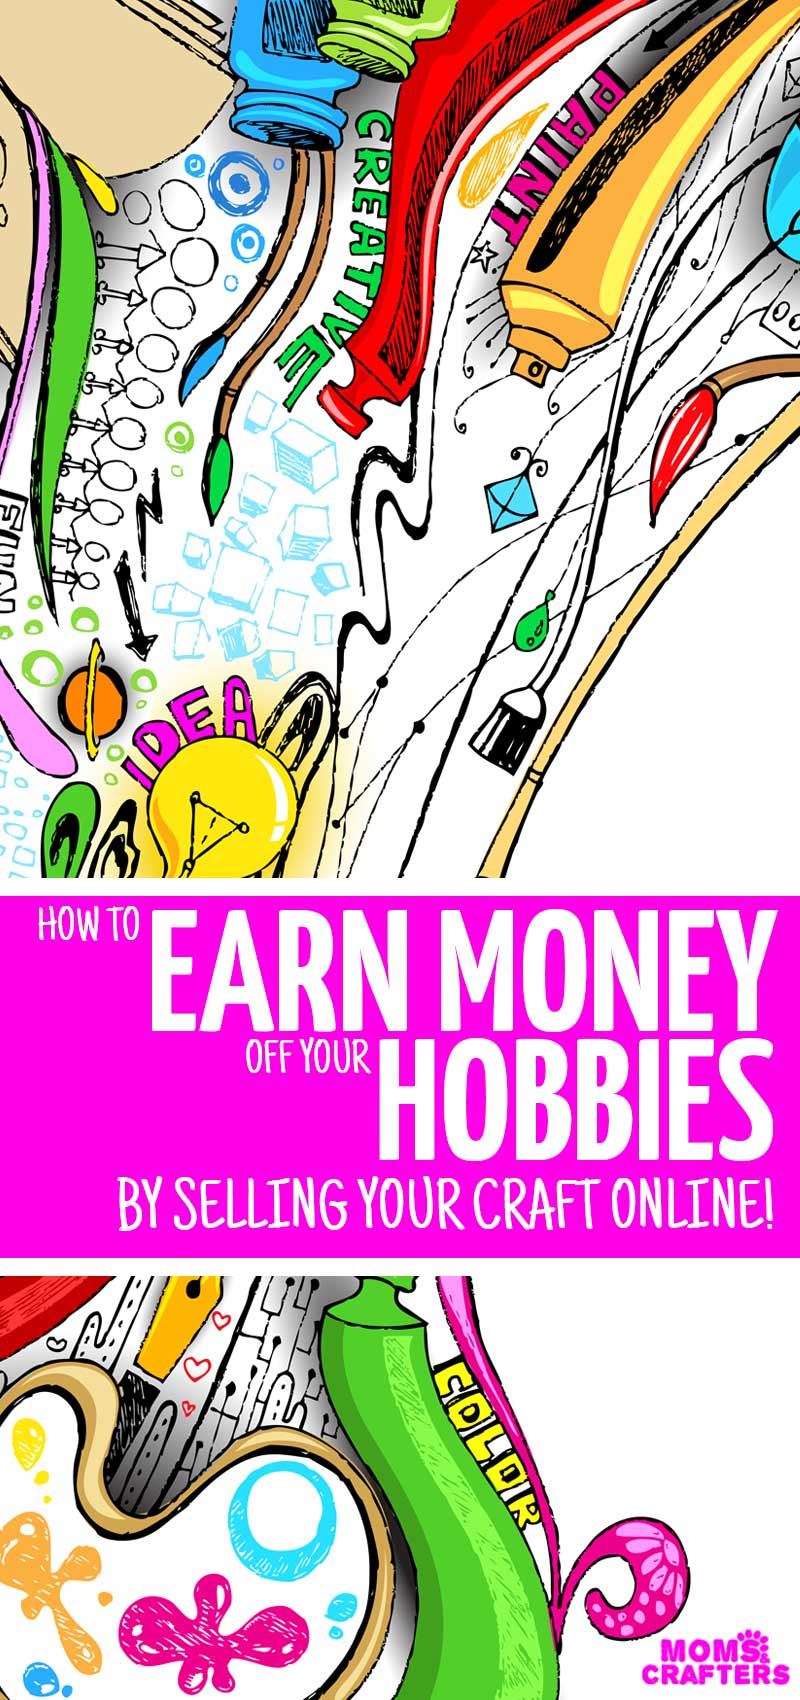 Click for the best proven strategies for selling crafts online and Etsy seller tips! Marketing handmade goods on Etsy, as well as other tips and tricks for photogrpahy and running an Etsy business in 2018